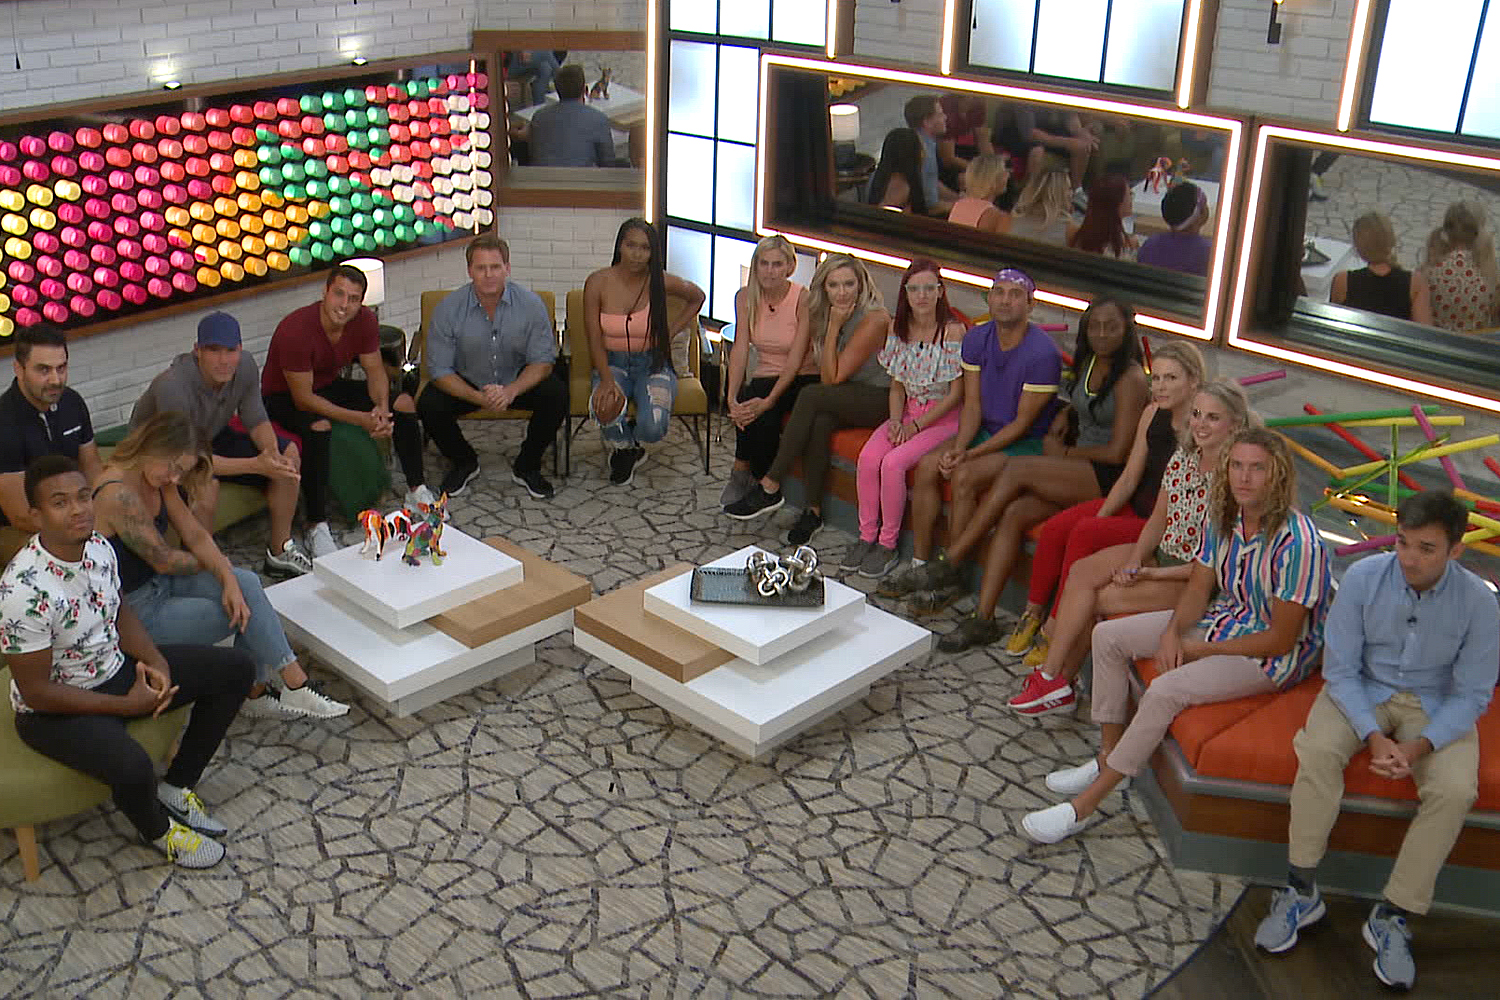 22nd season premiere of BIG BROTHER